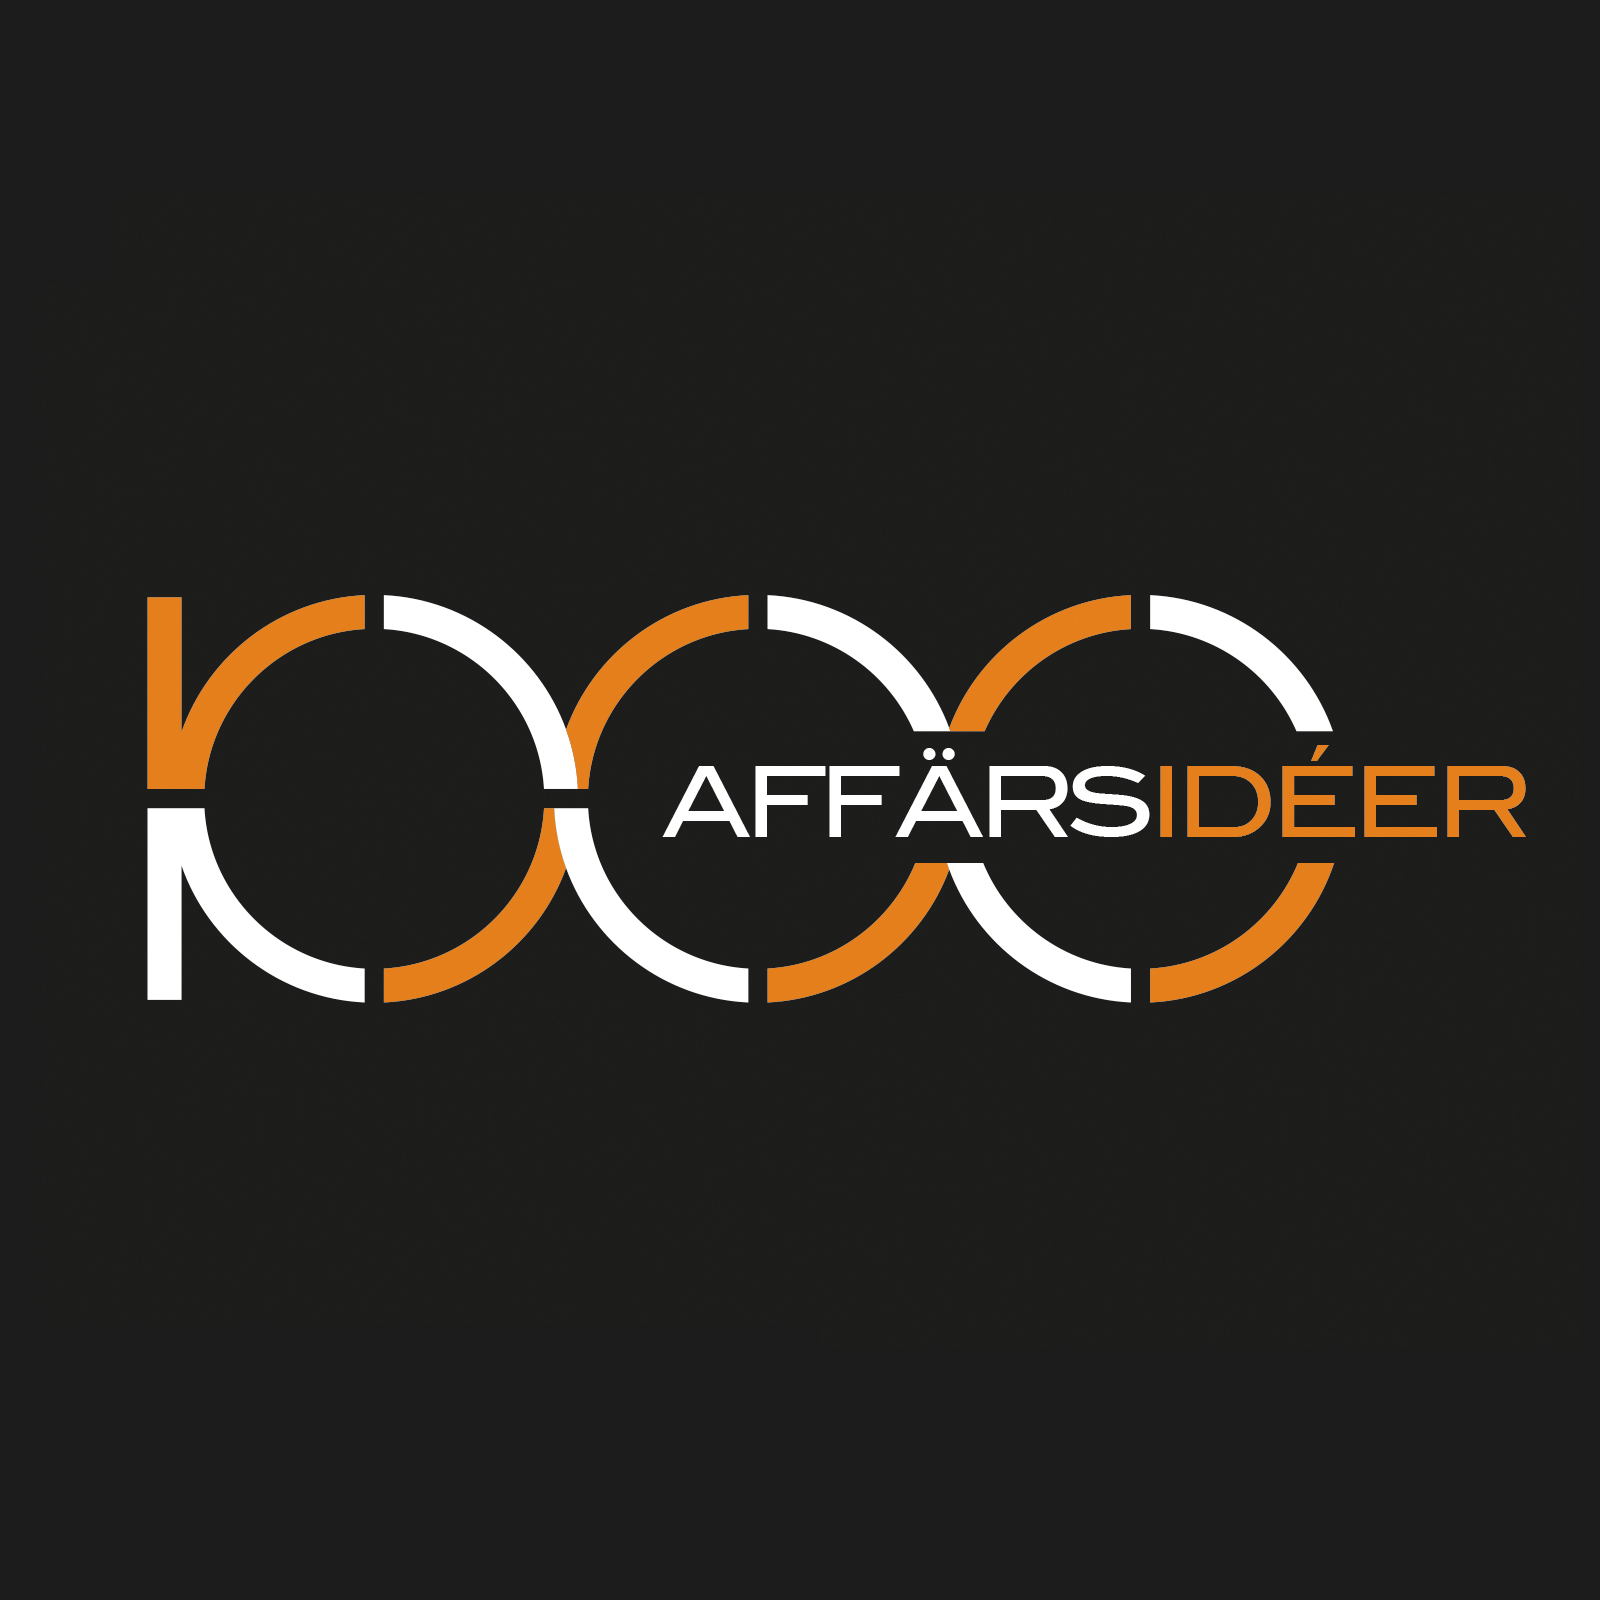 Show artwork for 1000 Affärsidéer